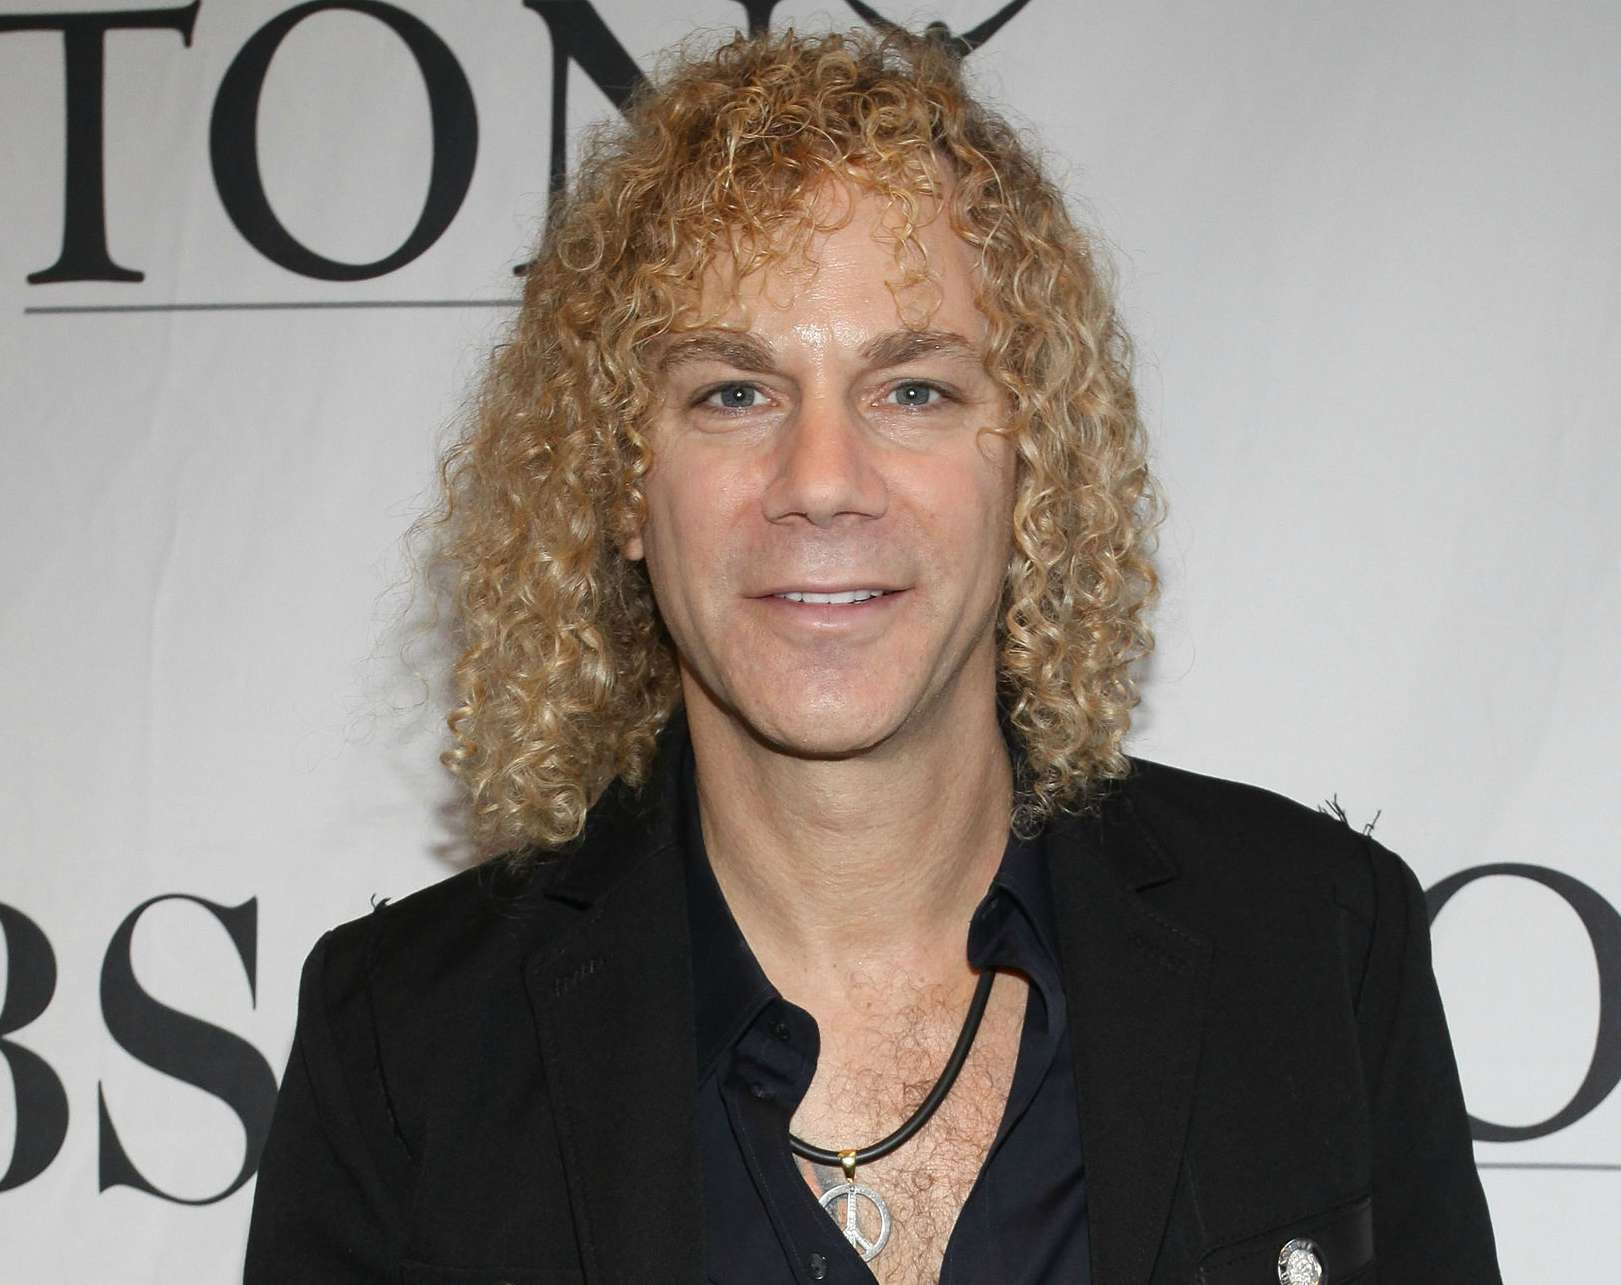 David Bryan attends the Tony eve cocktail party at the Intercontinental New York Barclay on June 12, 2010 in New York City